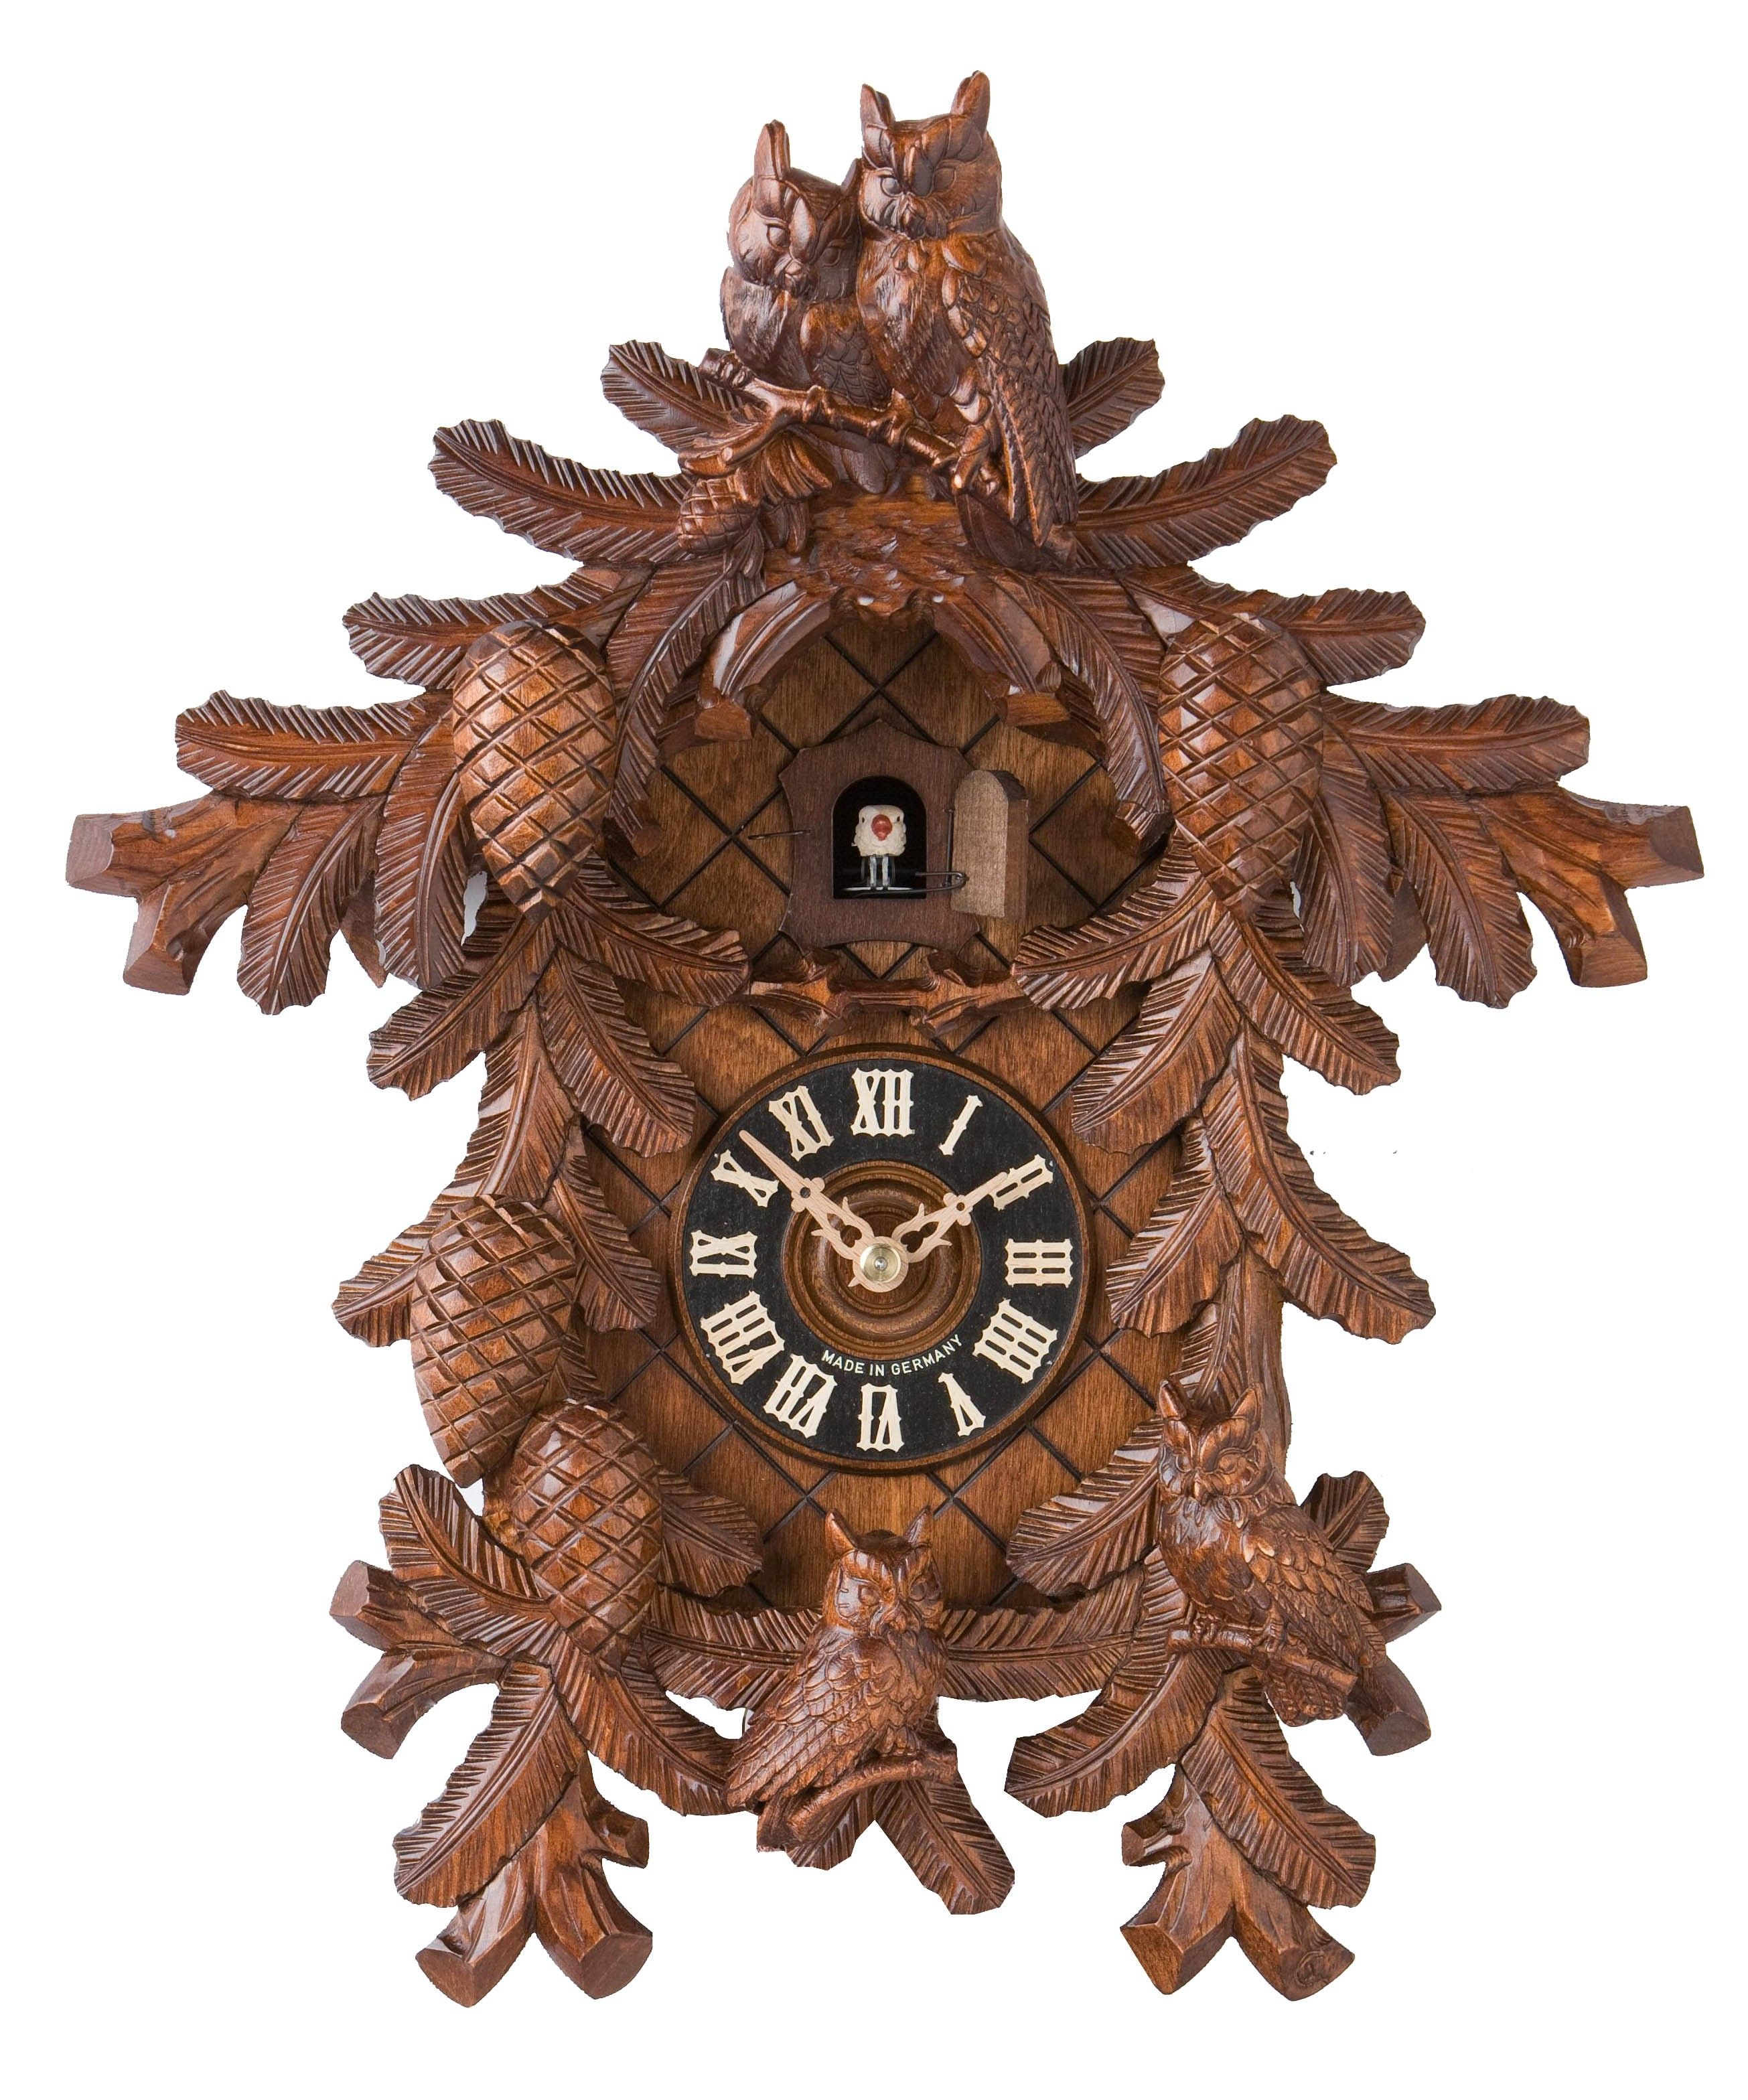 Pin By Zorica Ponjavic On German In 2020 Cuckoo Clock Forest Clock Clock